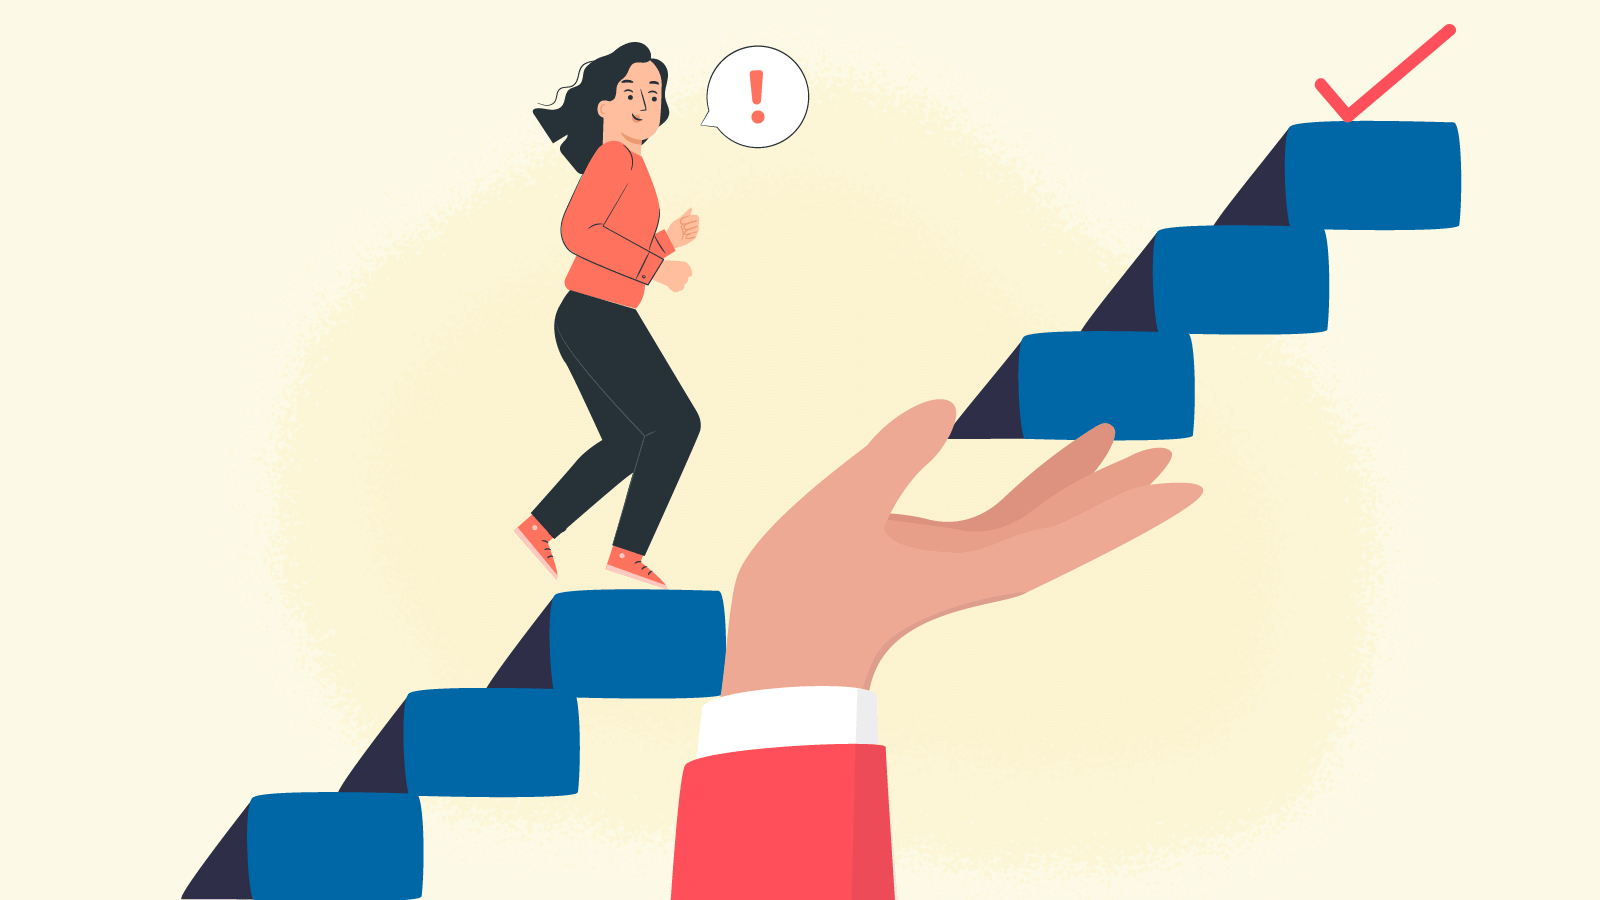 Steps and Tips to Stay in Control